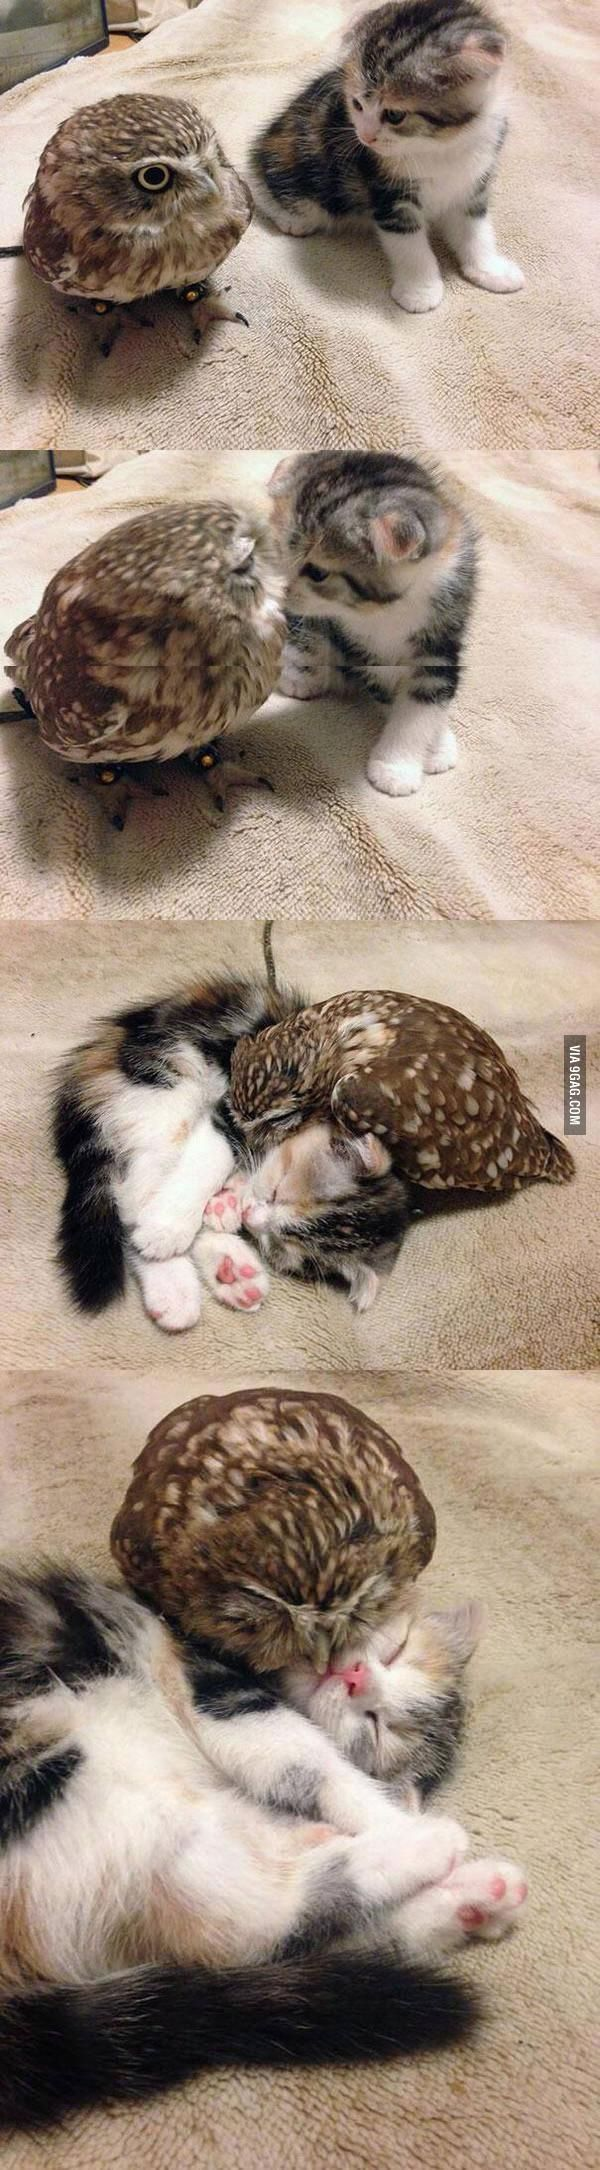 Tiny owl and tiny kitten OMG OMG OMG!!! This will get you out of any bad mood, just LOOK at them!!